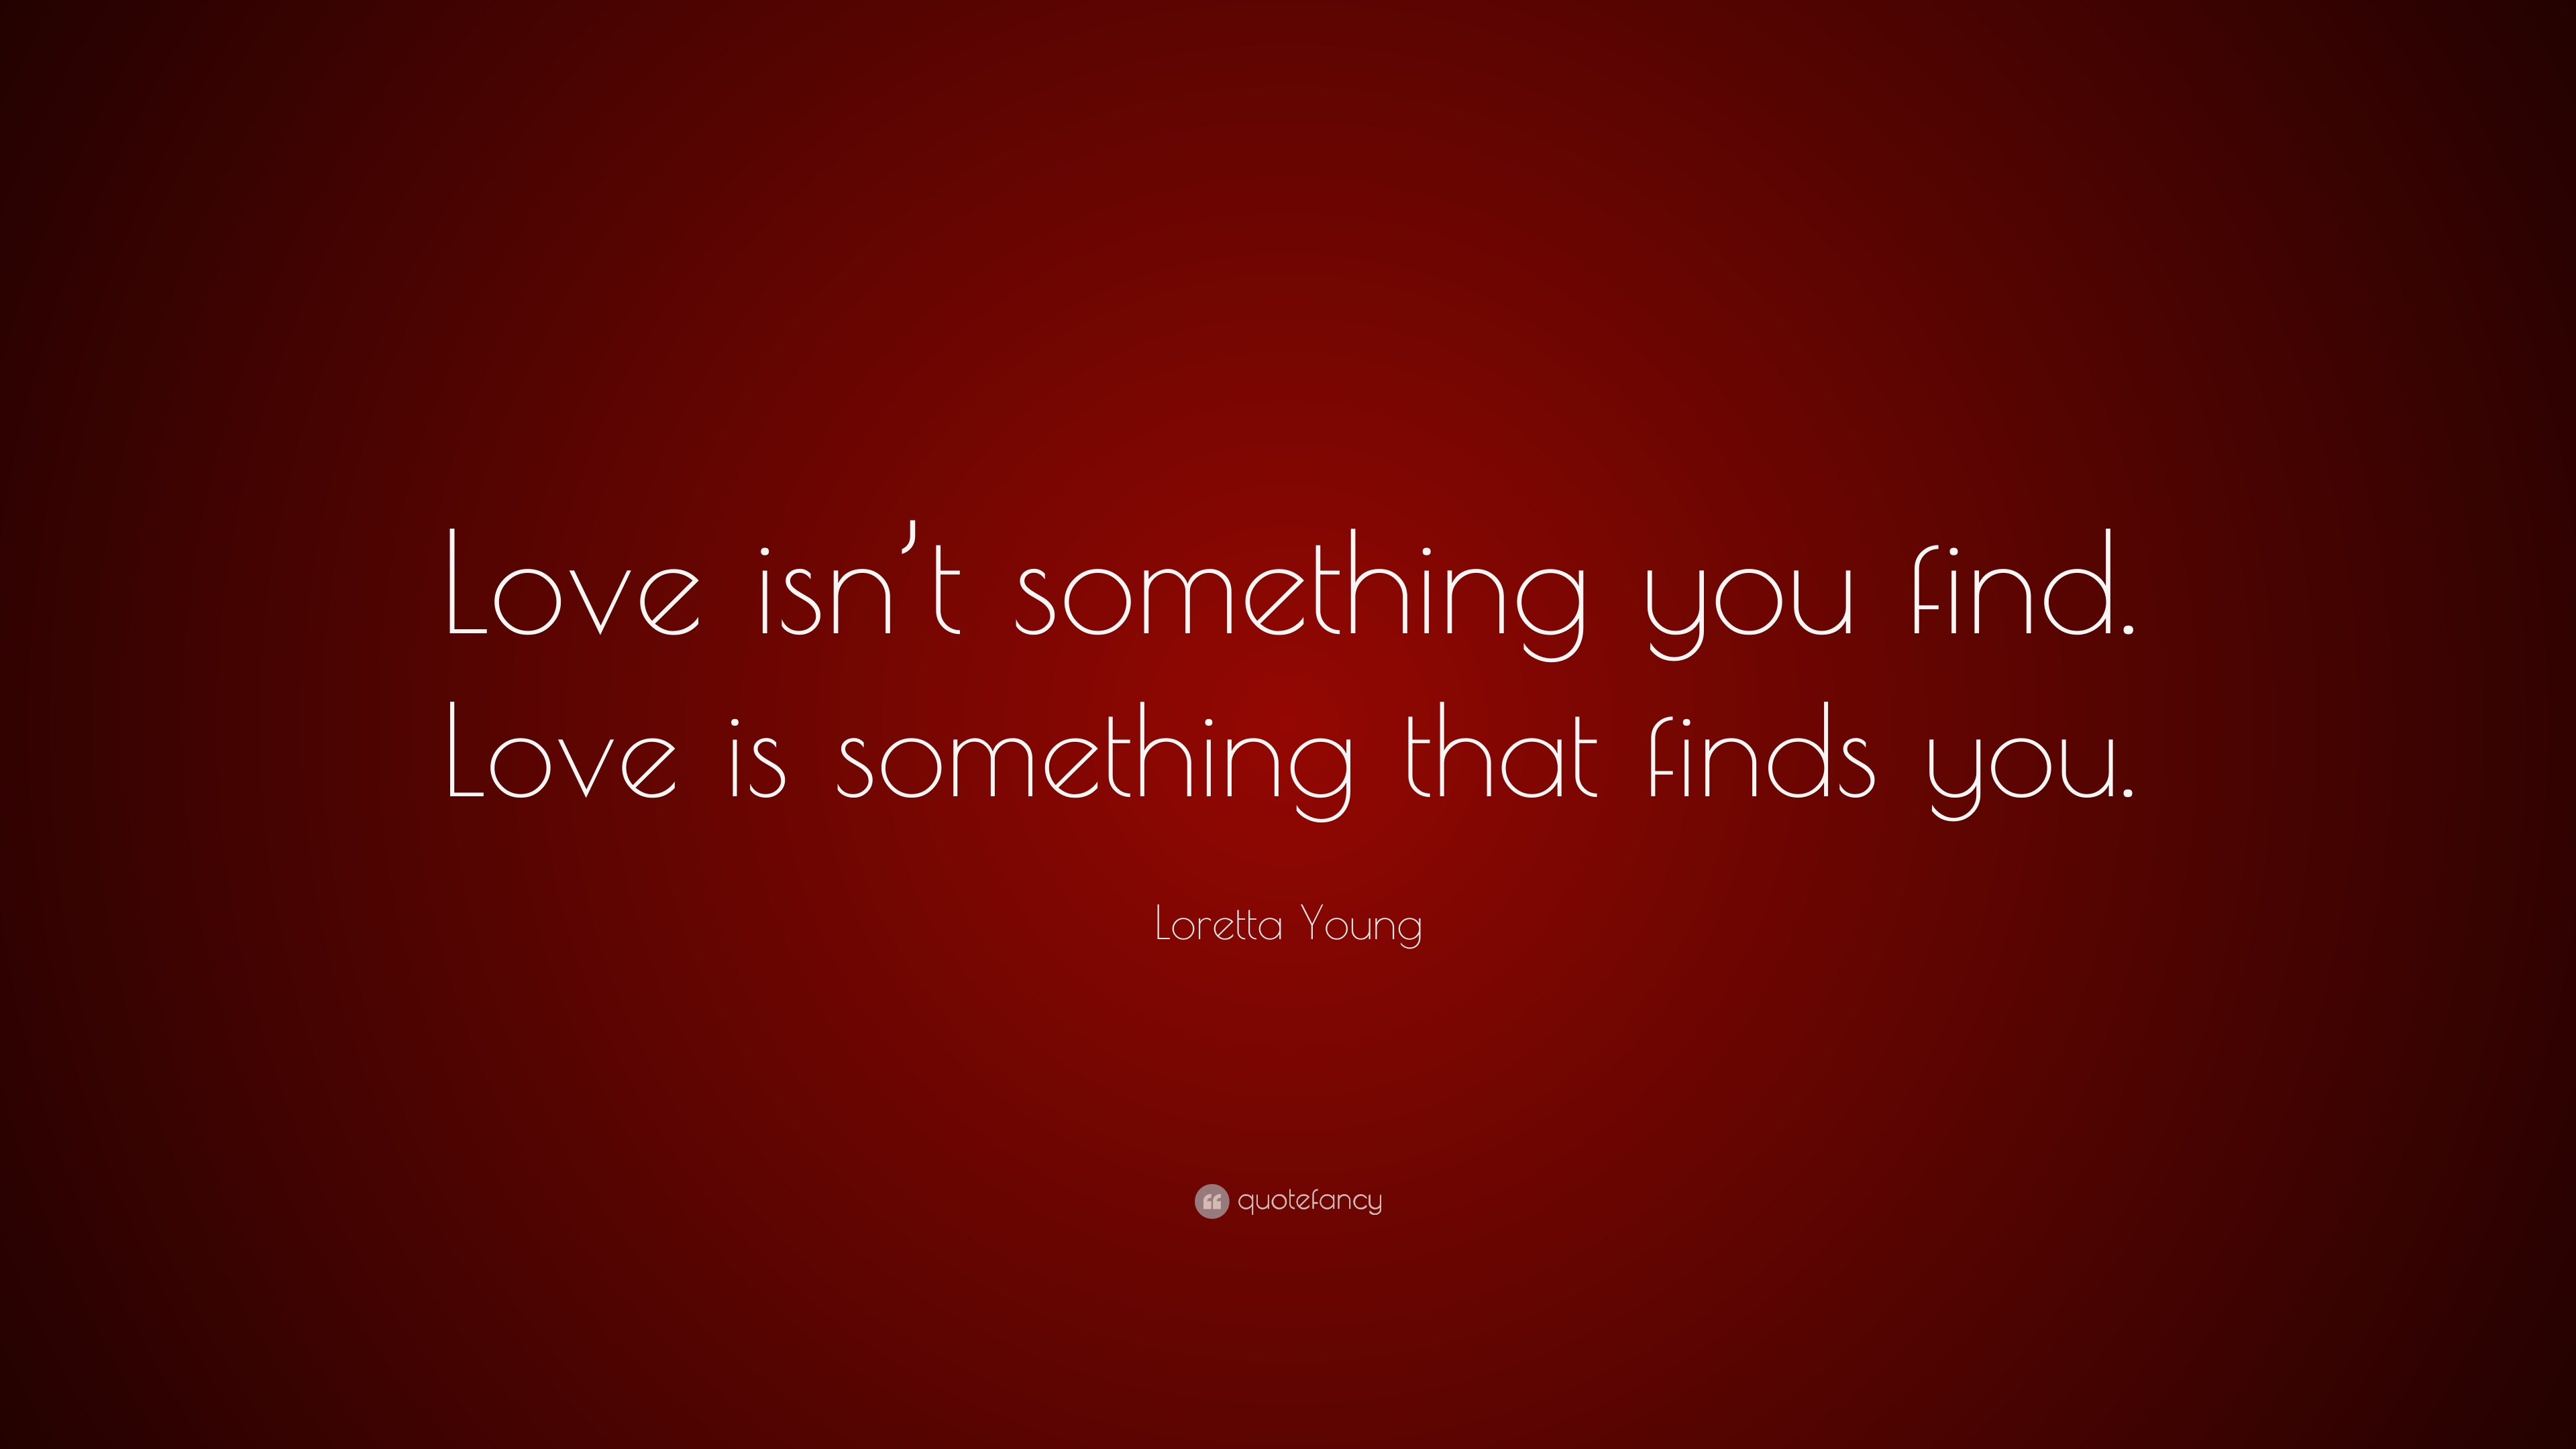 Awesome Loretta Young Quote: U201cLove Isnu0027t Something You Find. Love Is Something